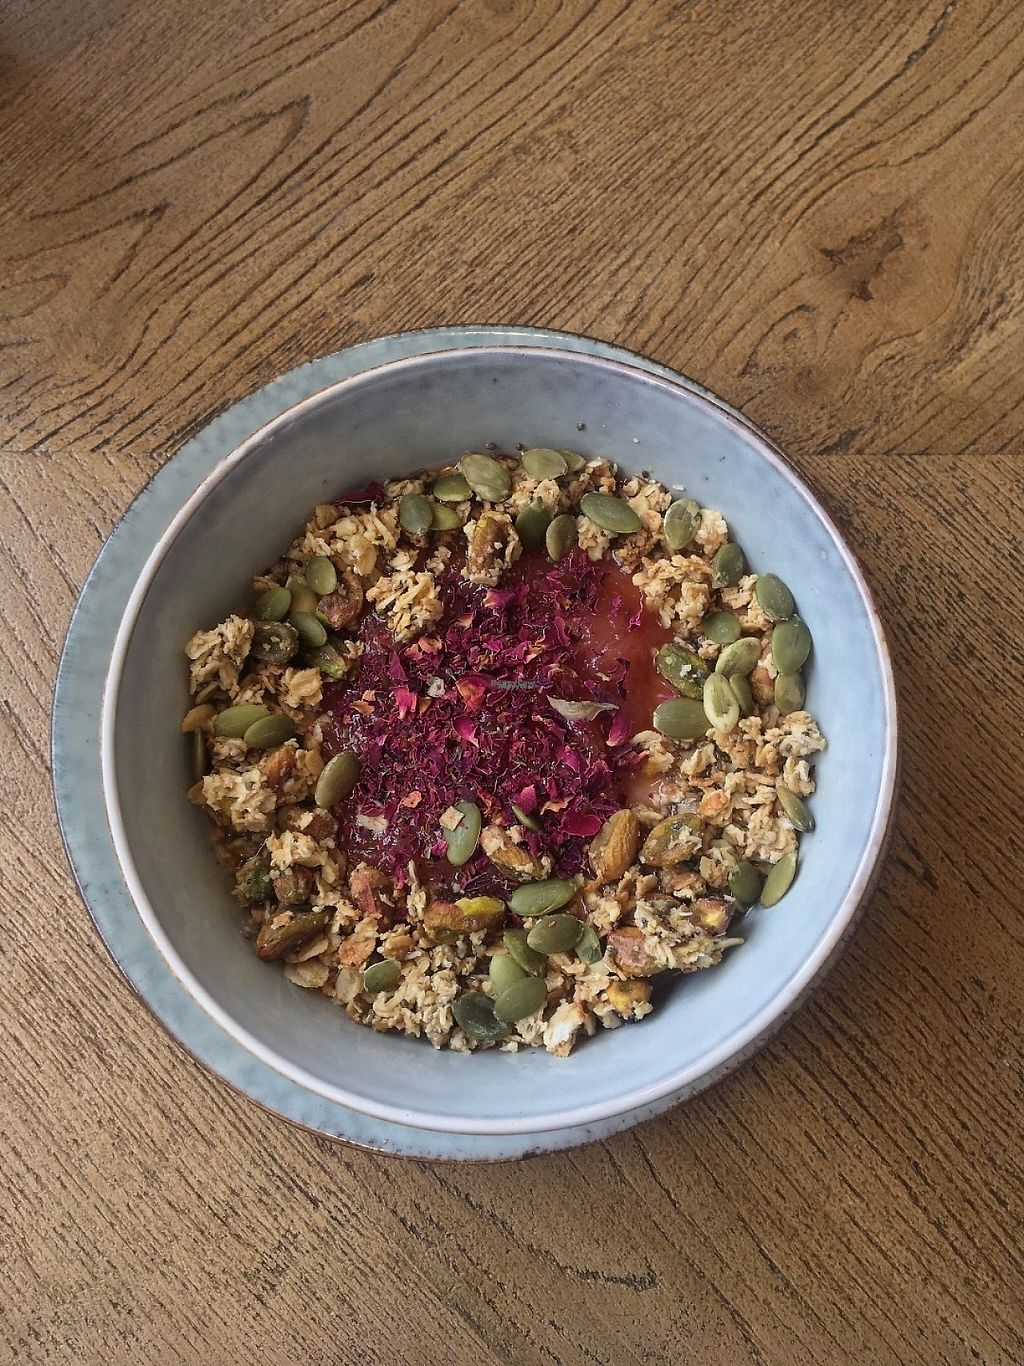 """Photo of Brochan  by <a href=""""/members/profile/lucirebecca"""">lucirebecca</a> <br/>Porridge with homemade rhubarb compote and rose, topped with pistachios, homemade granola and pumpkin seeds <br/> April 4, 2017  - <a href='/contact/abuse/image/86136/244793'>Report</a>"""